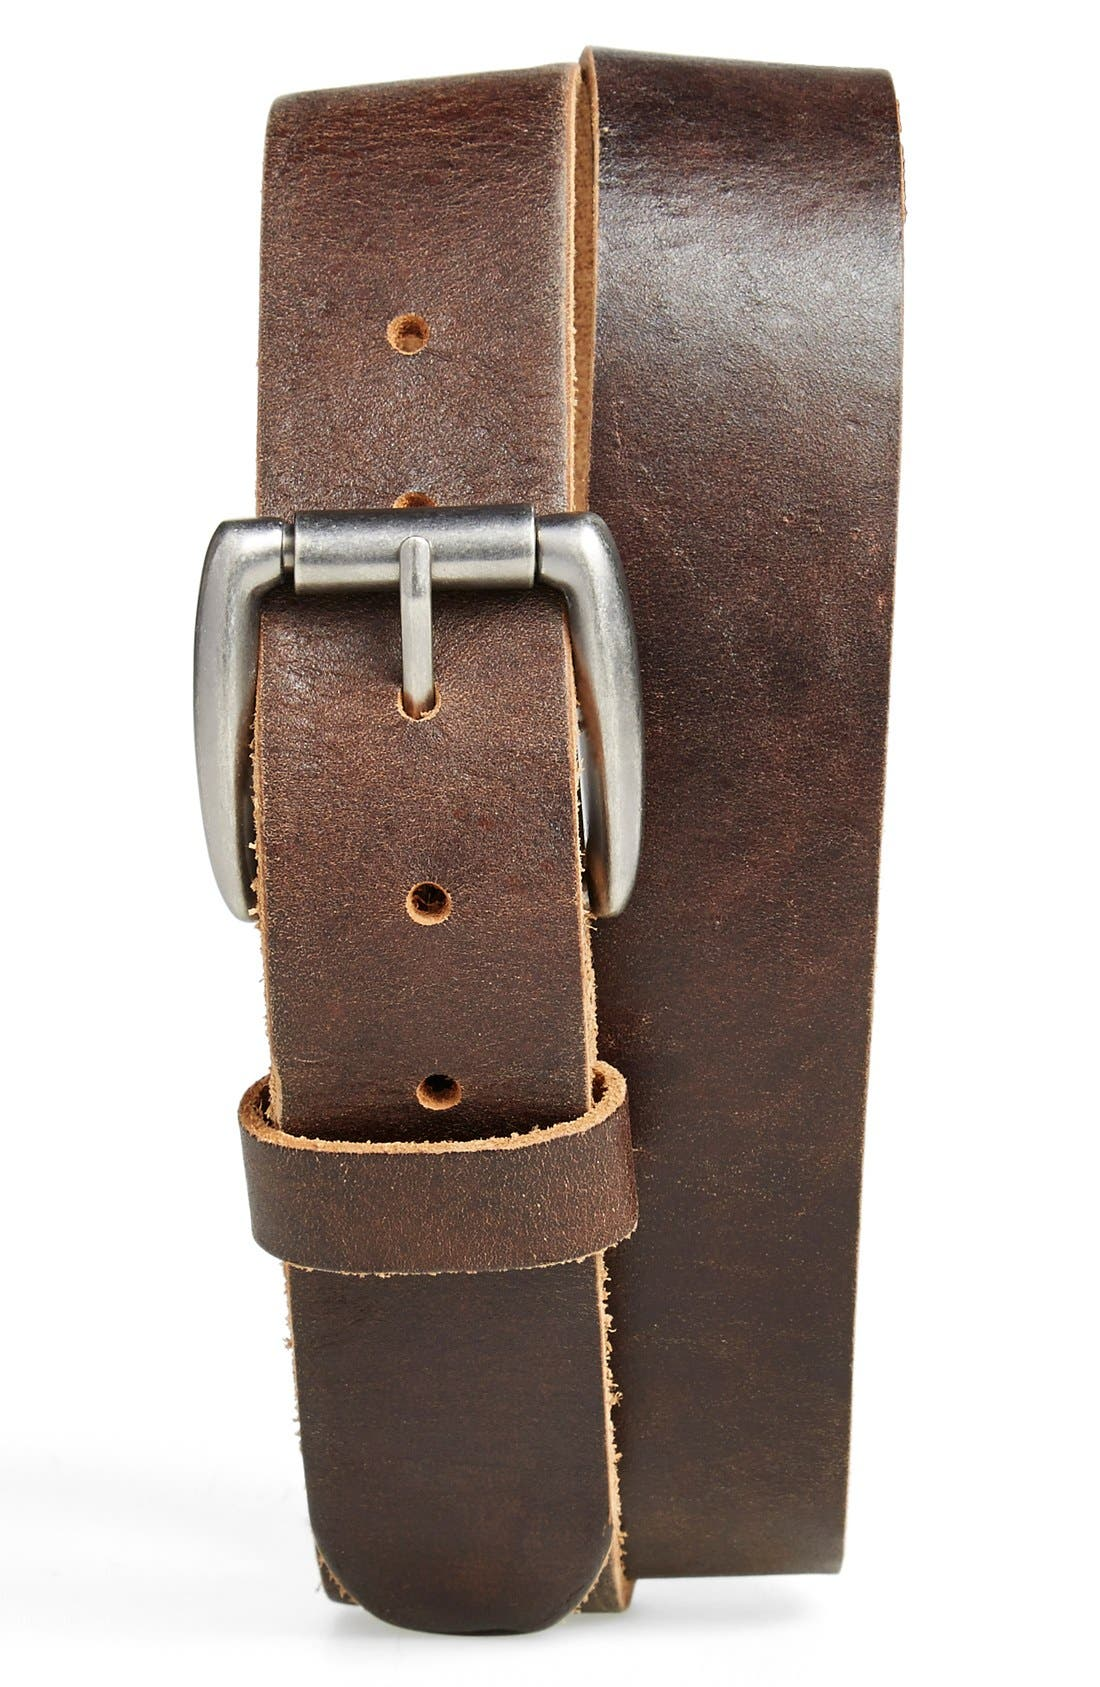 Alternate Image 1 Selected - Bill Adler 1981 Roller Buckle Belt